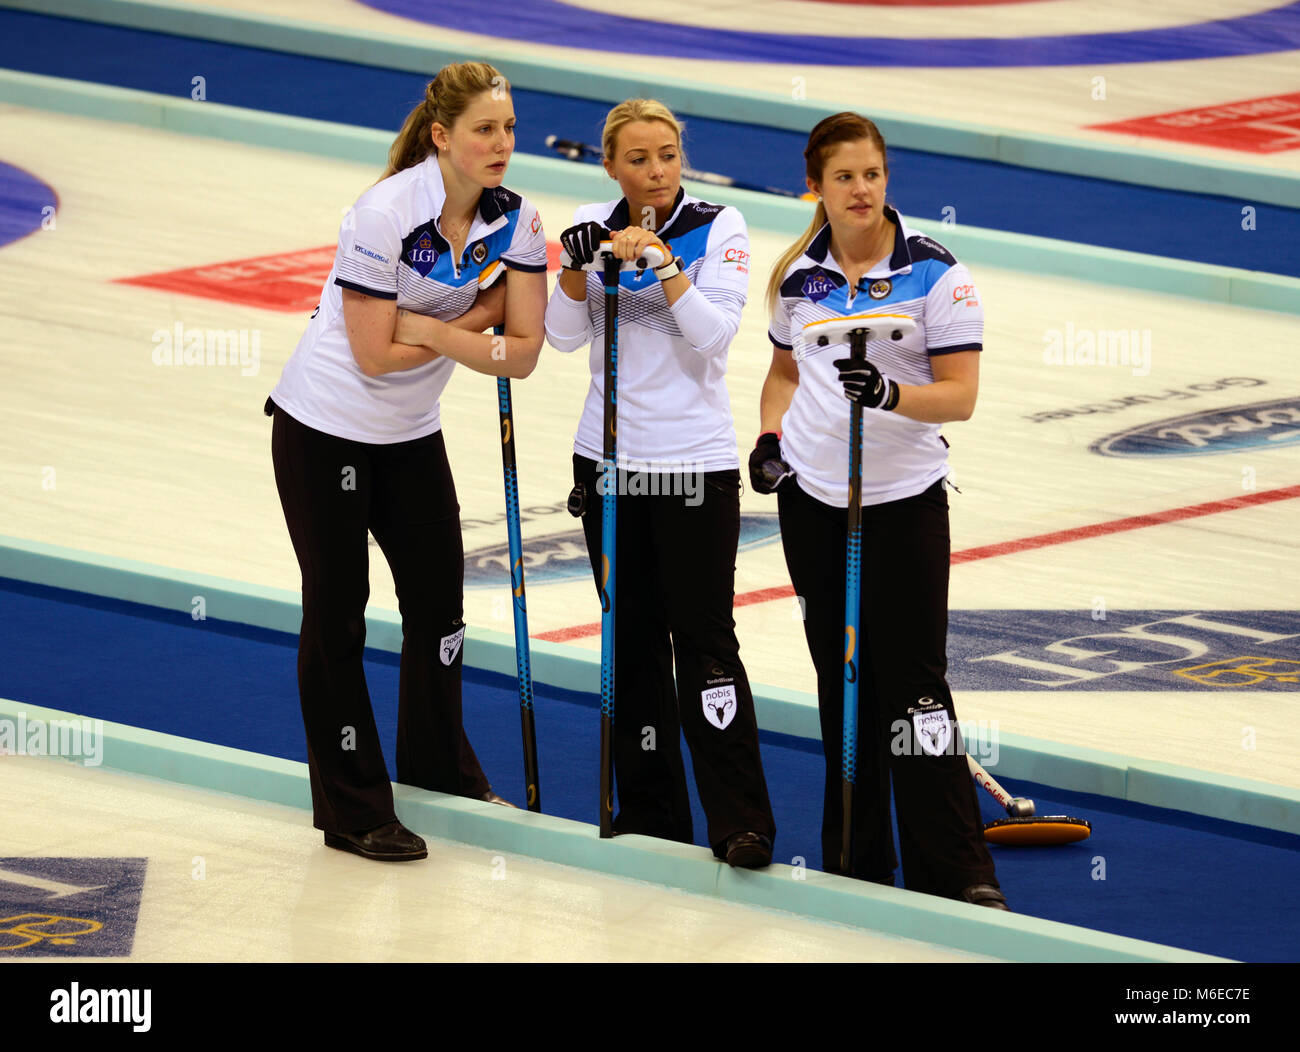 Curling Scotland Stock Photos & Curling Scotland Stock ...